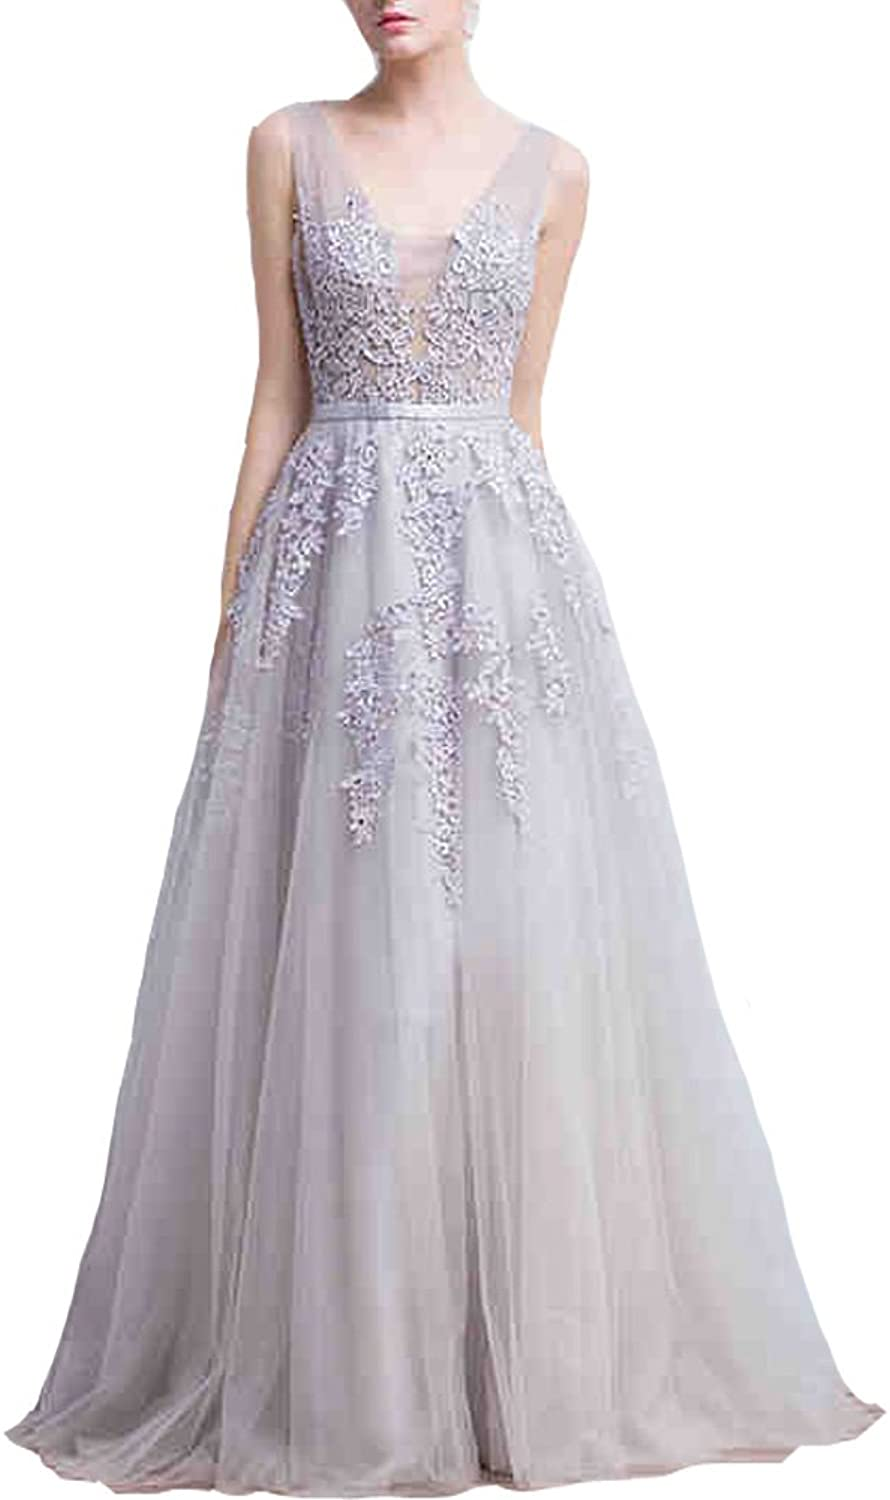 Lemai Tulle Backless Sheer Top Lace Appliques Long Beaded Prom Evening Dresses